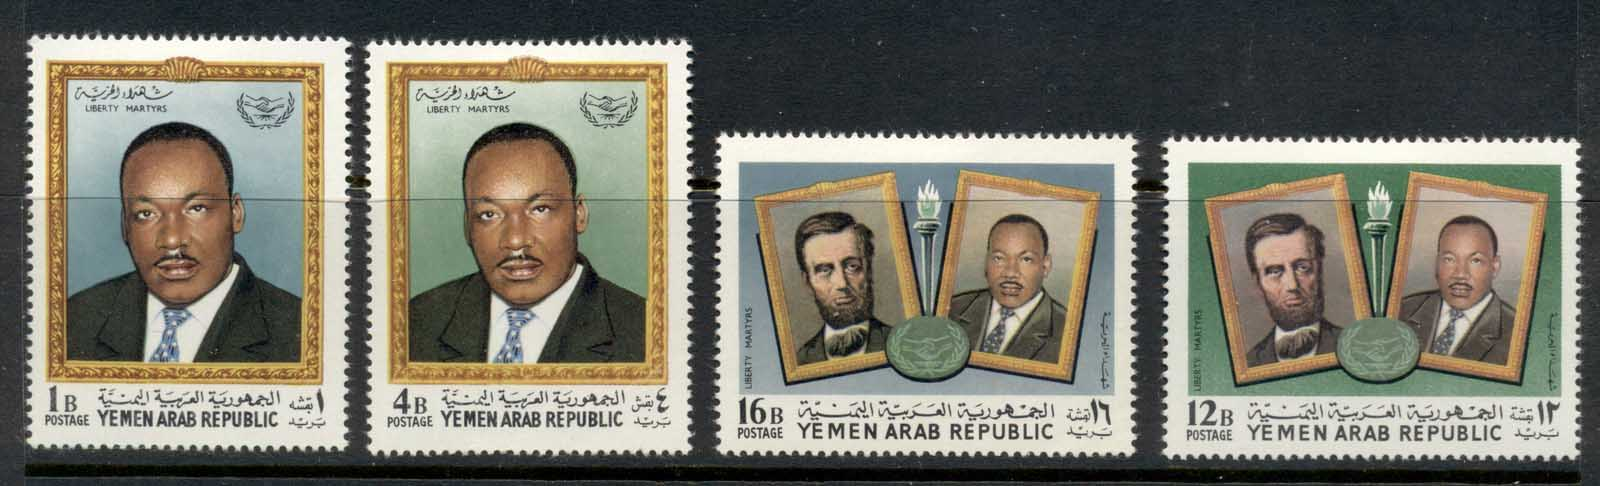 Yemen 1968 Mi#855-858 Fighters for Human Rights CTO